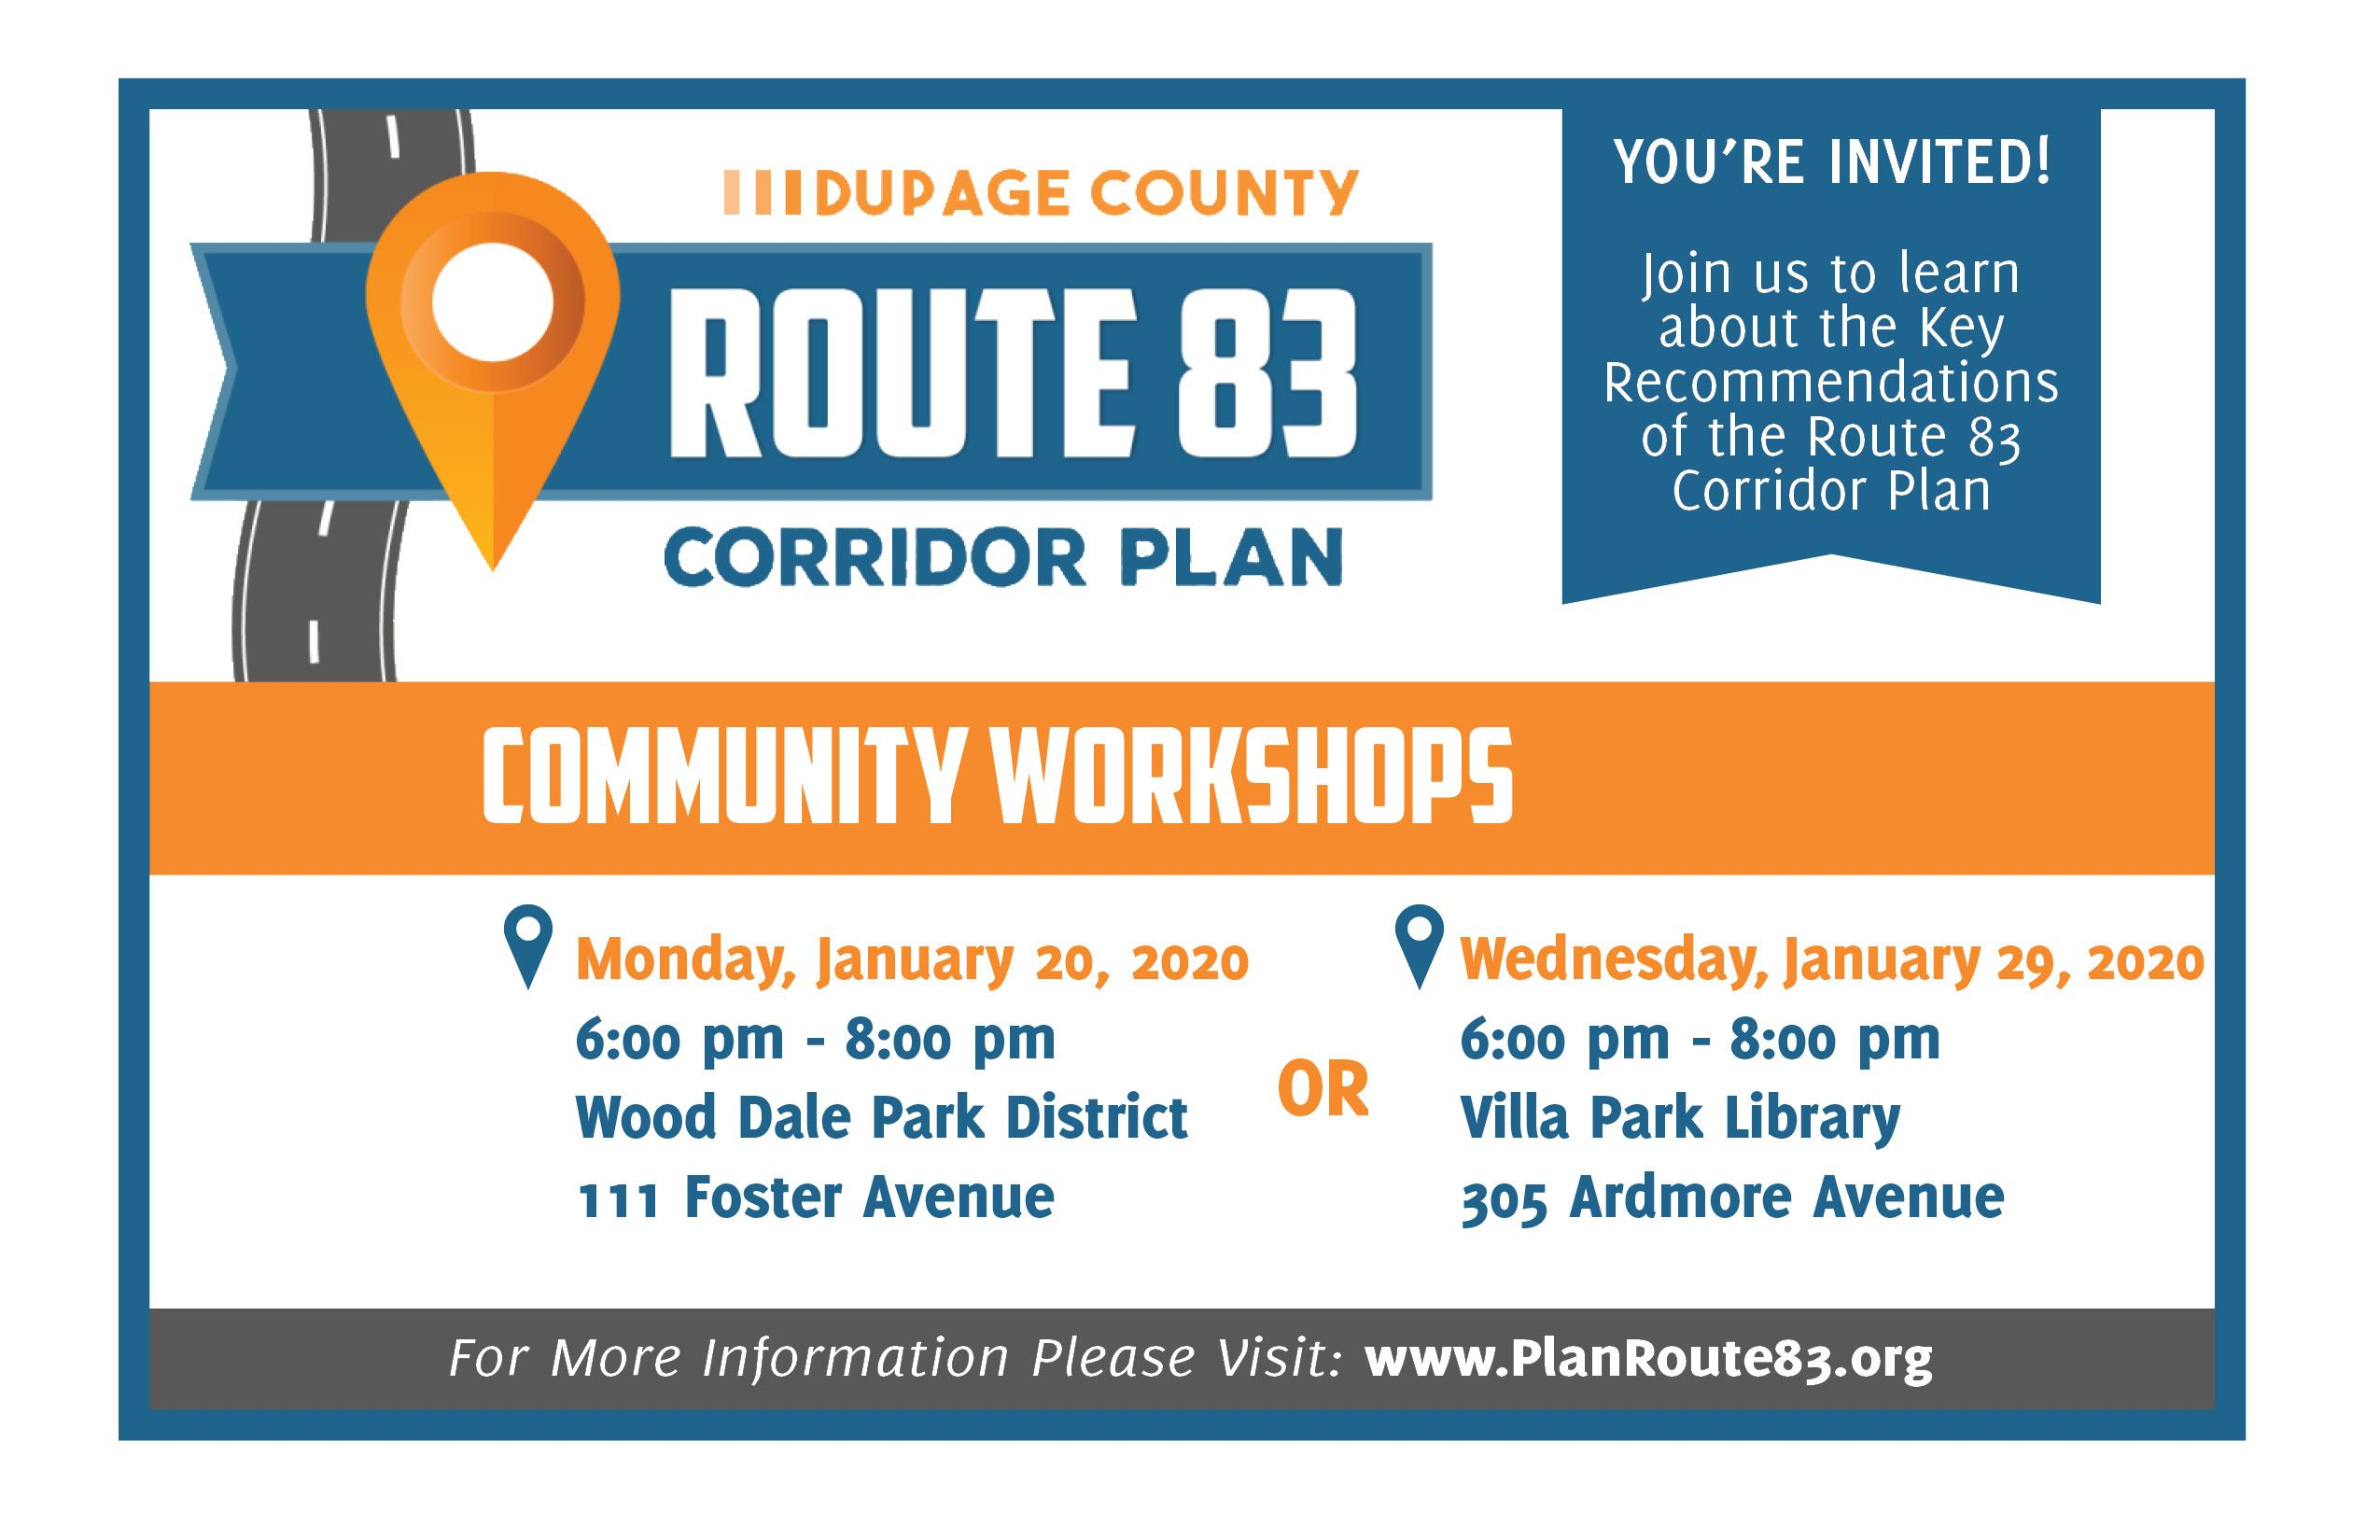 Rt 83 Corridor Plan Community Workshop